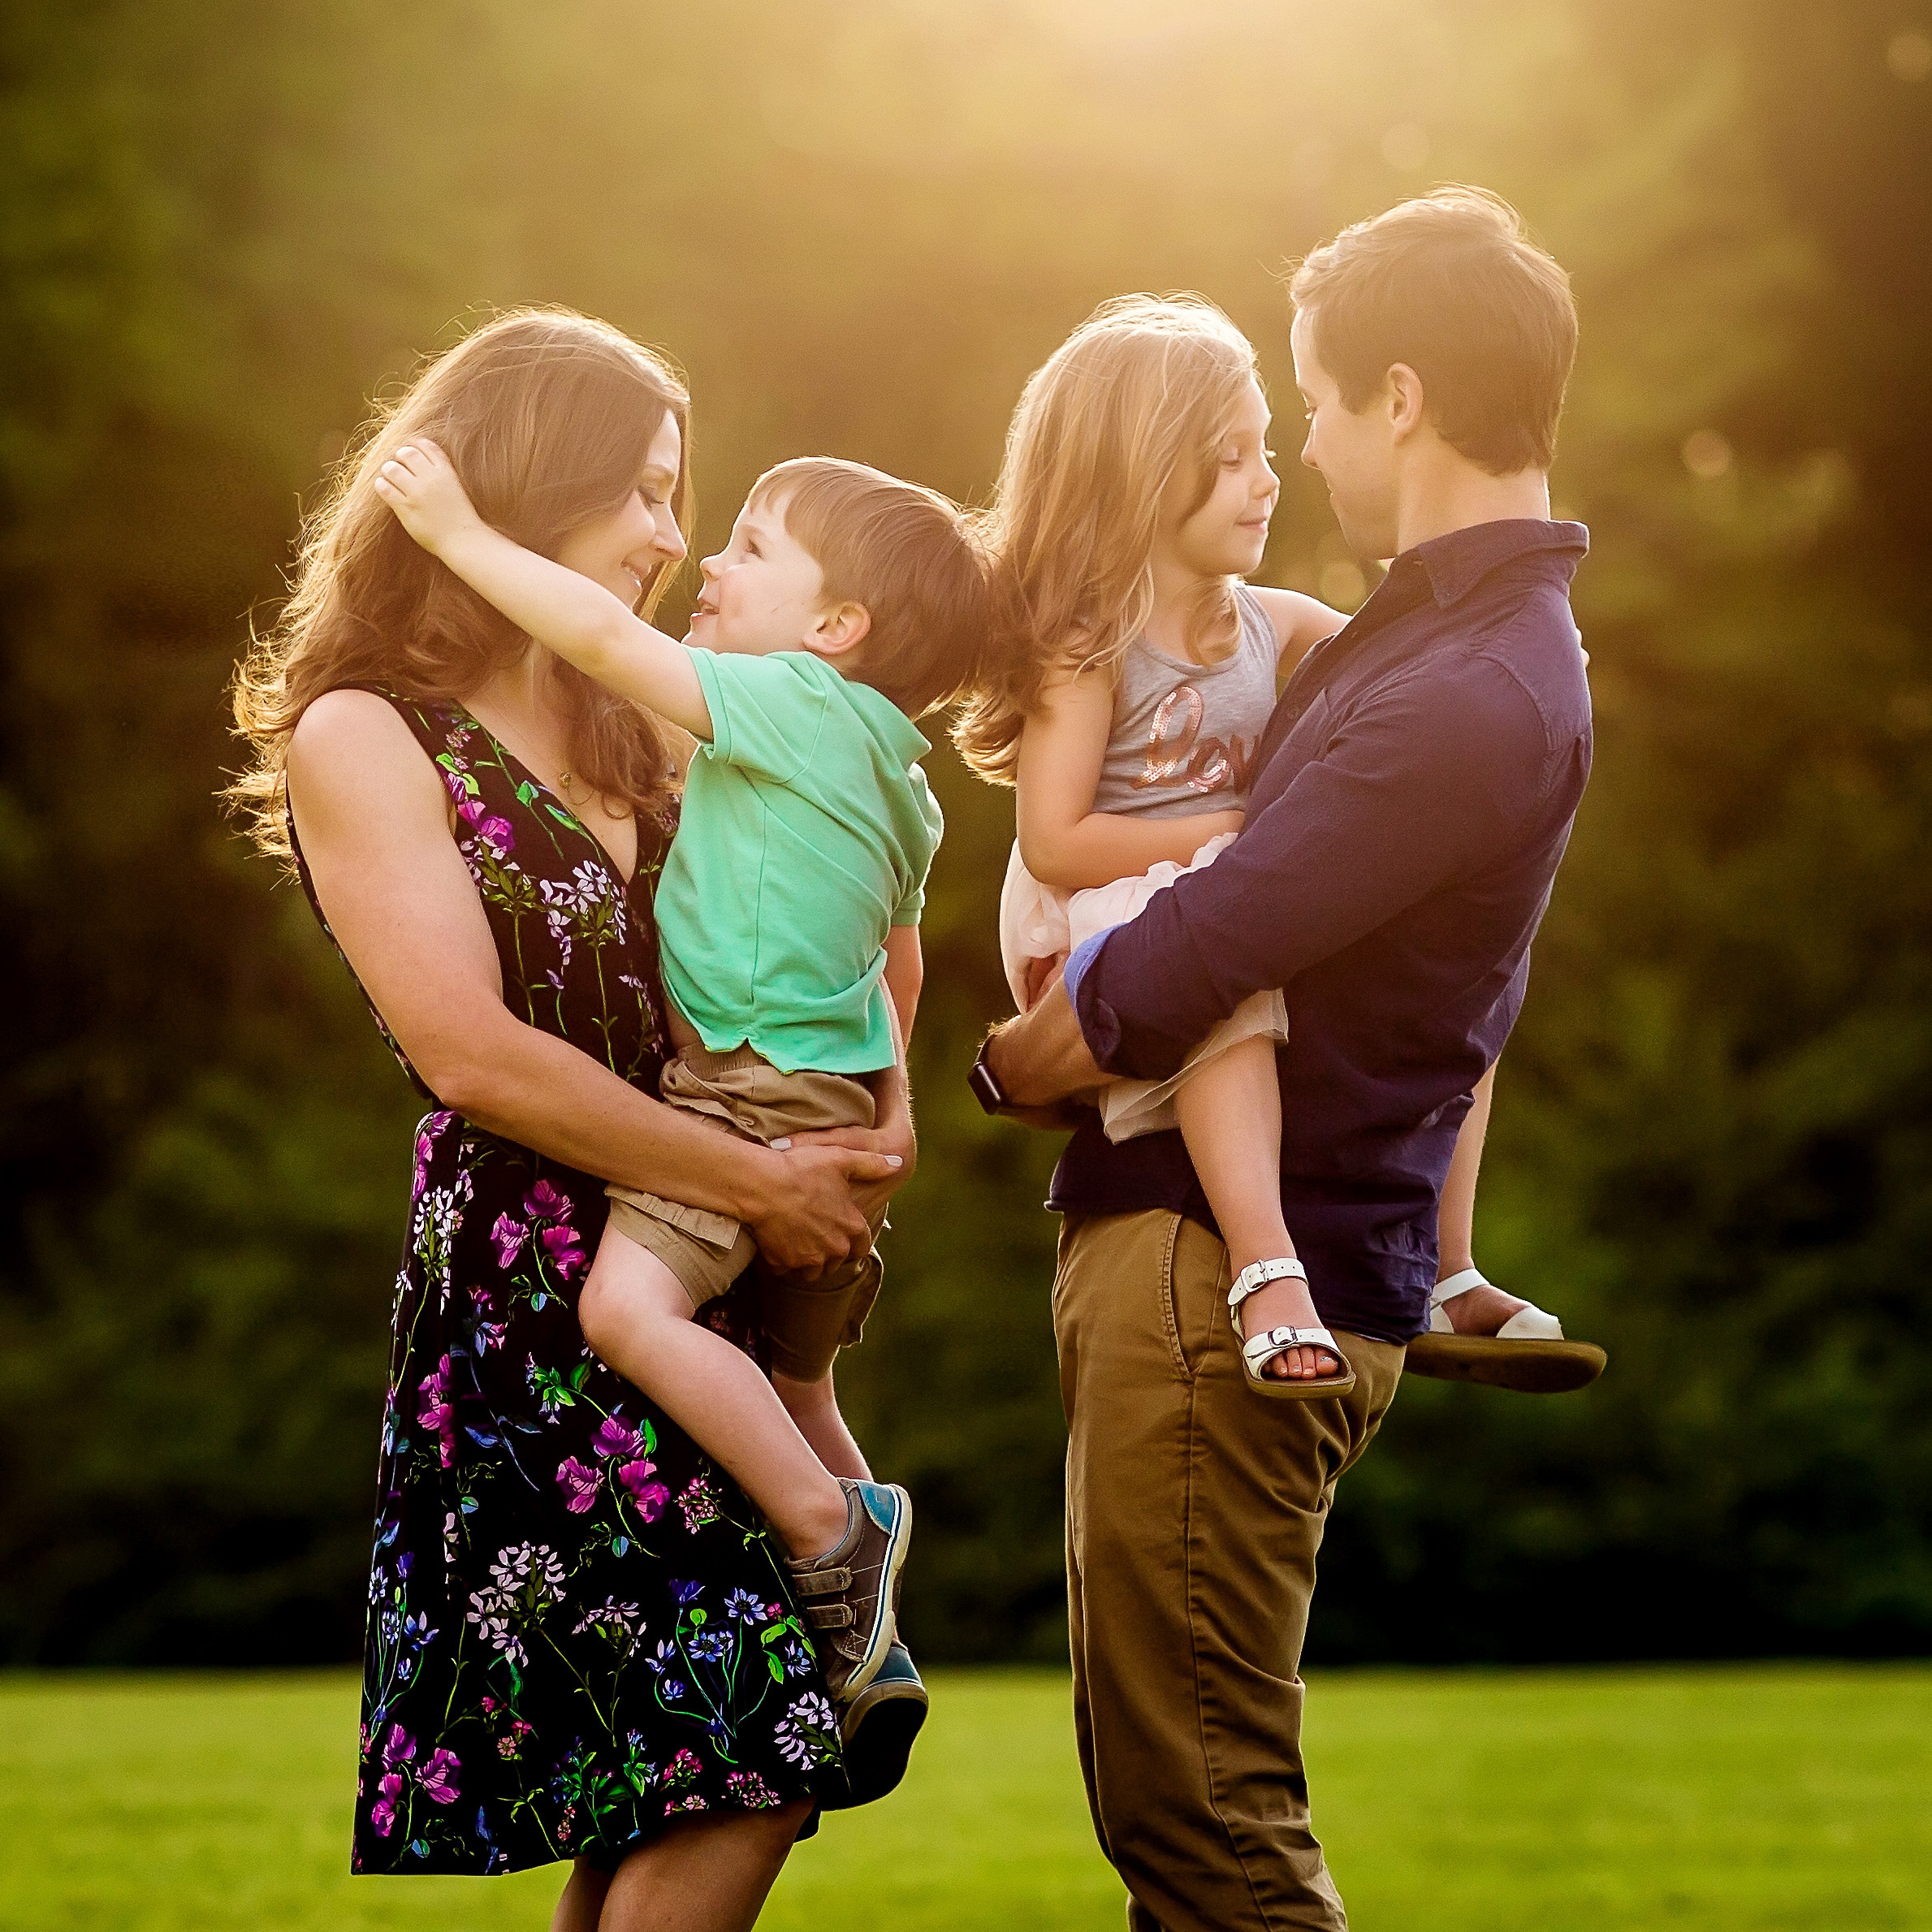 FAMILIES - Less about perfect smiles and camera stares, more about family laughs, playtime, & snuggles.